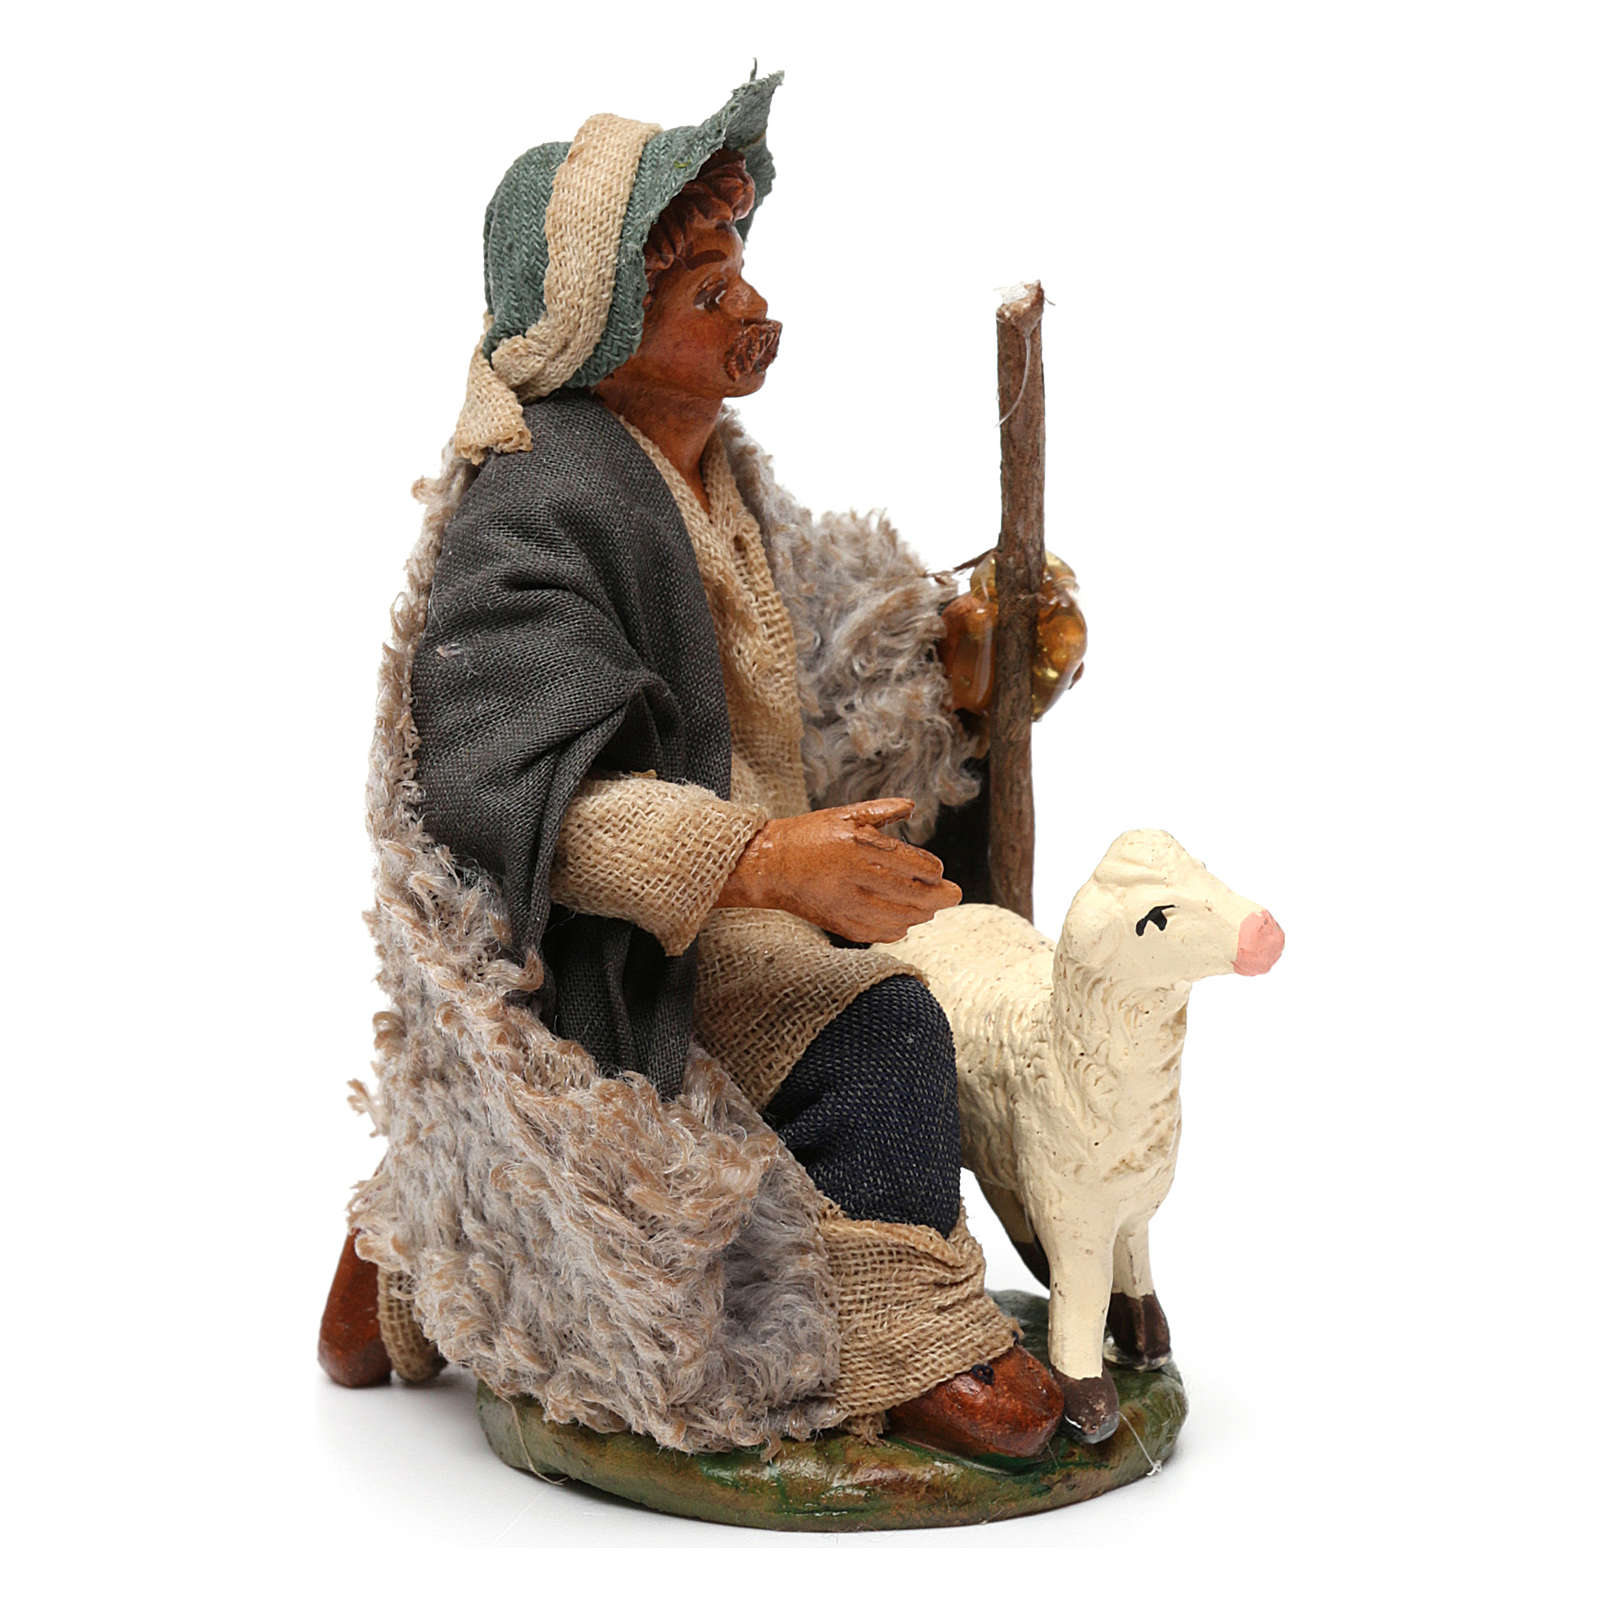 Nativity set accessory Kneeling shepherd sheep 10 cm figurines 4